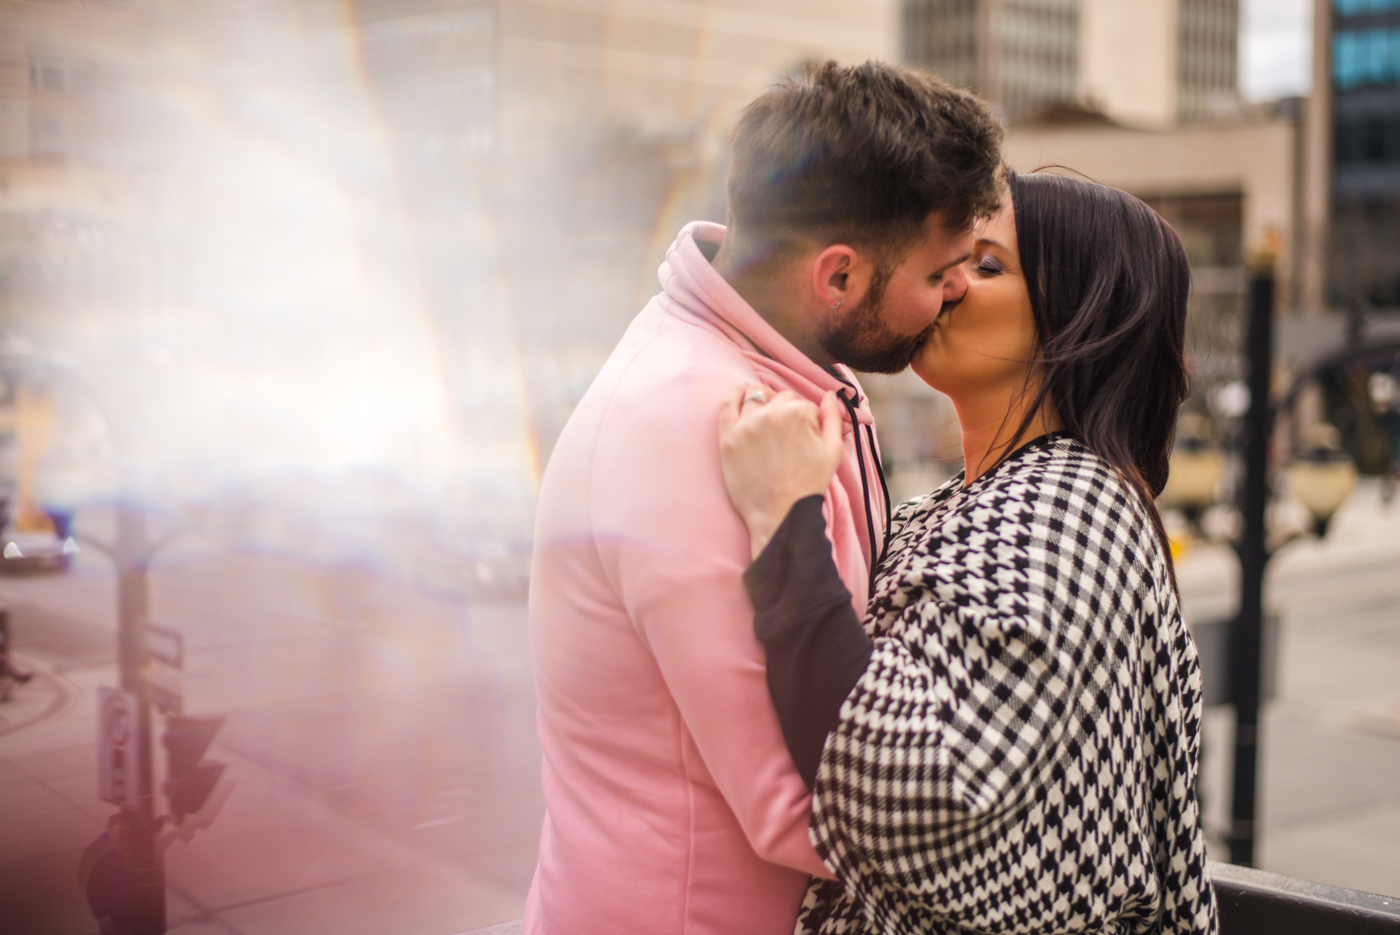 Alex & Michelle's Downtown Hamilton Gore Park James Street North King Street East Engagement Session Aidan Hennebry Urban Wedding Photographer Hush Hush Photography & Film-19.jpg